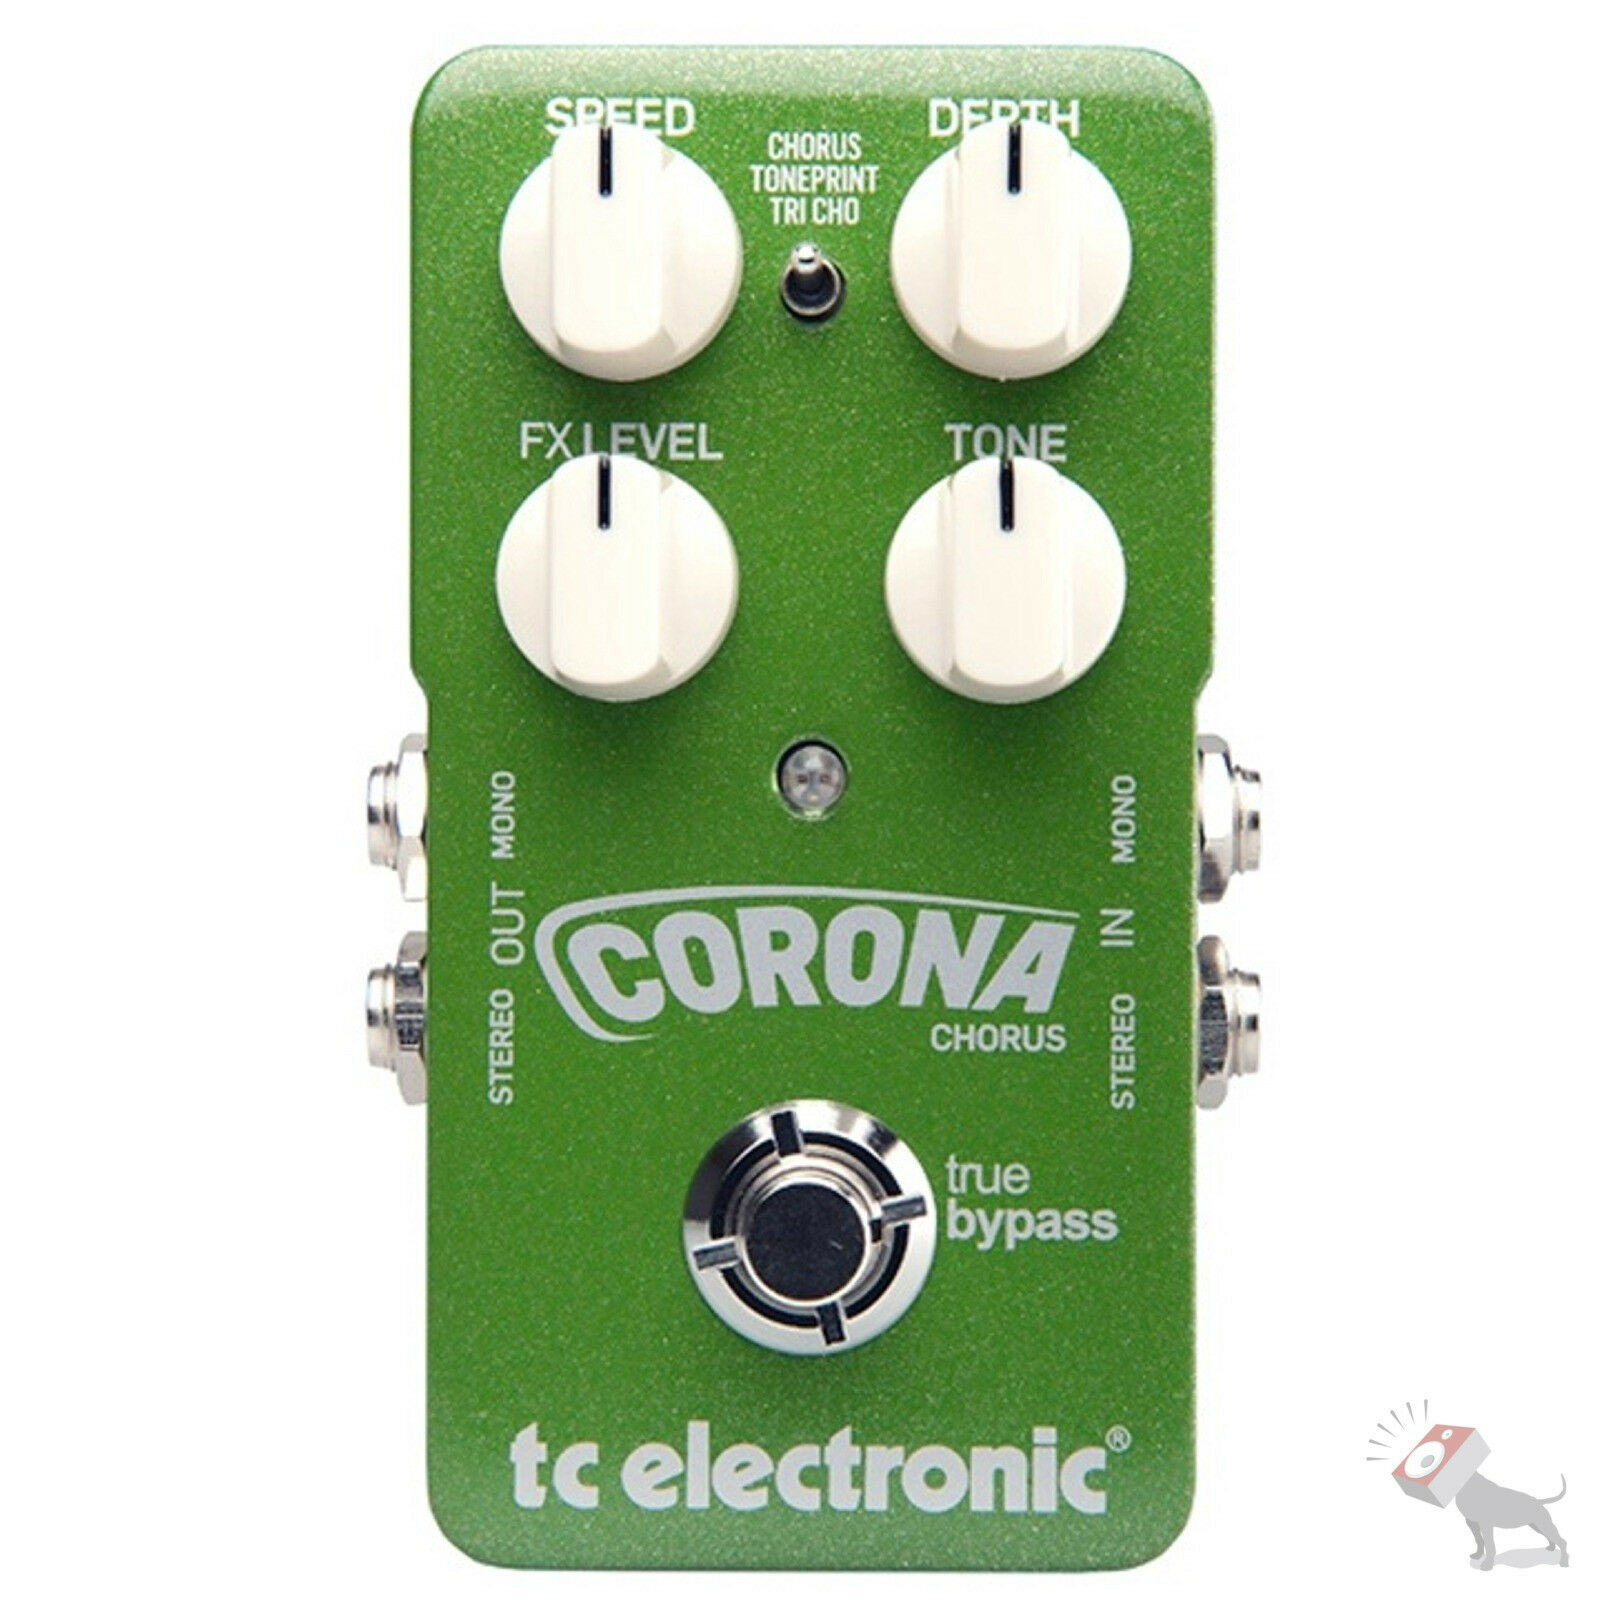 TC Electronic CGoldna Stereo Chorus Guitar Effects Pedal FX